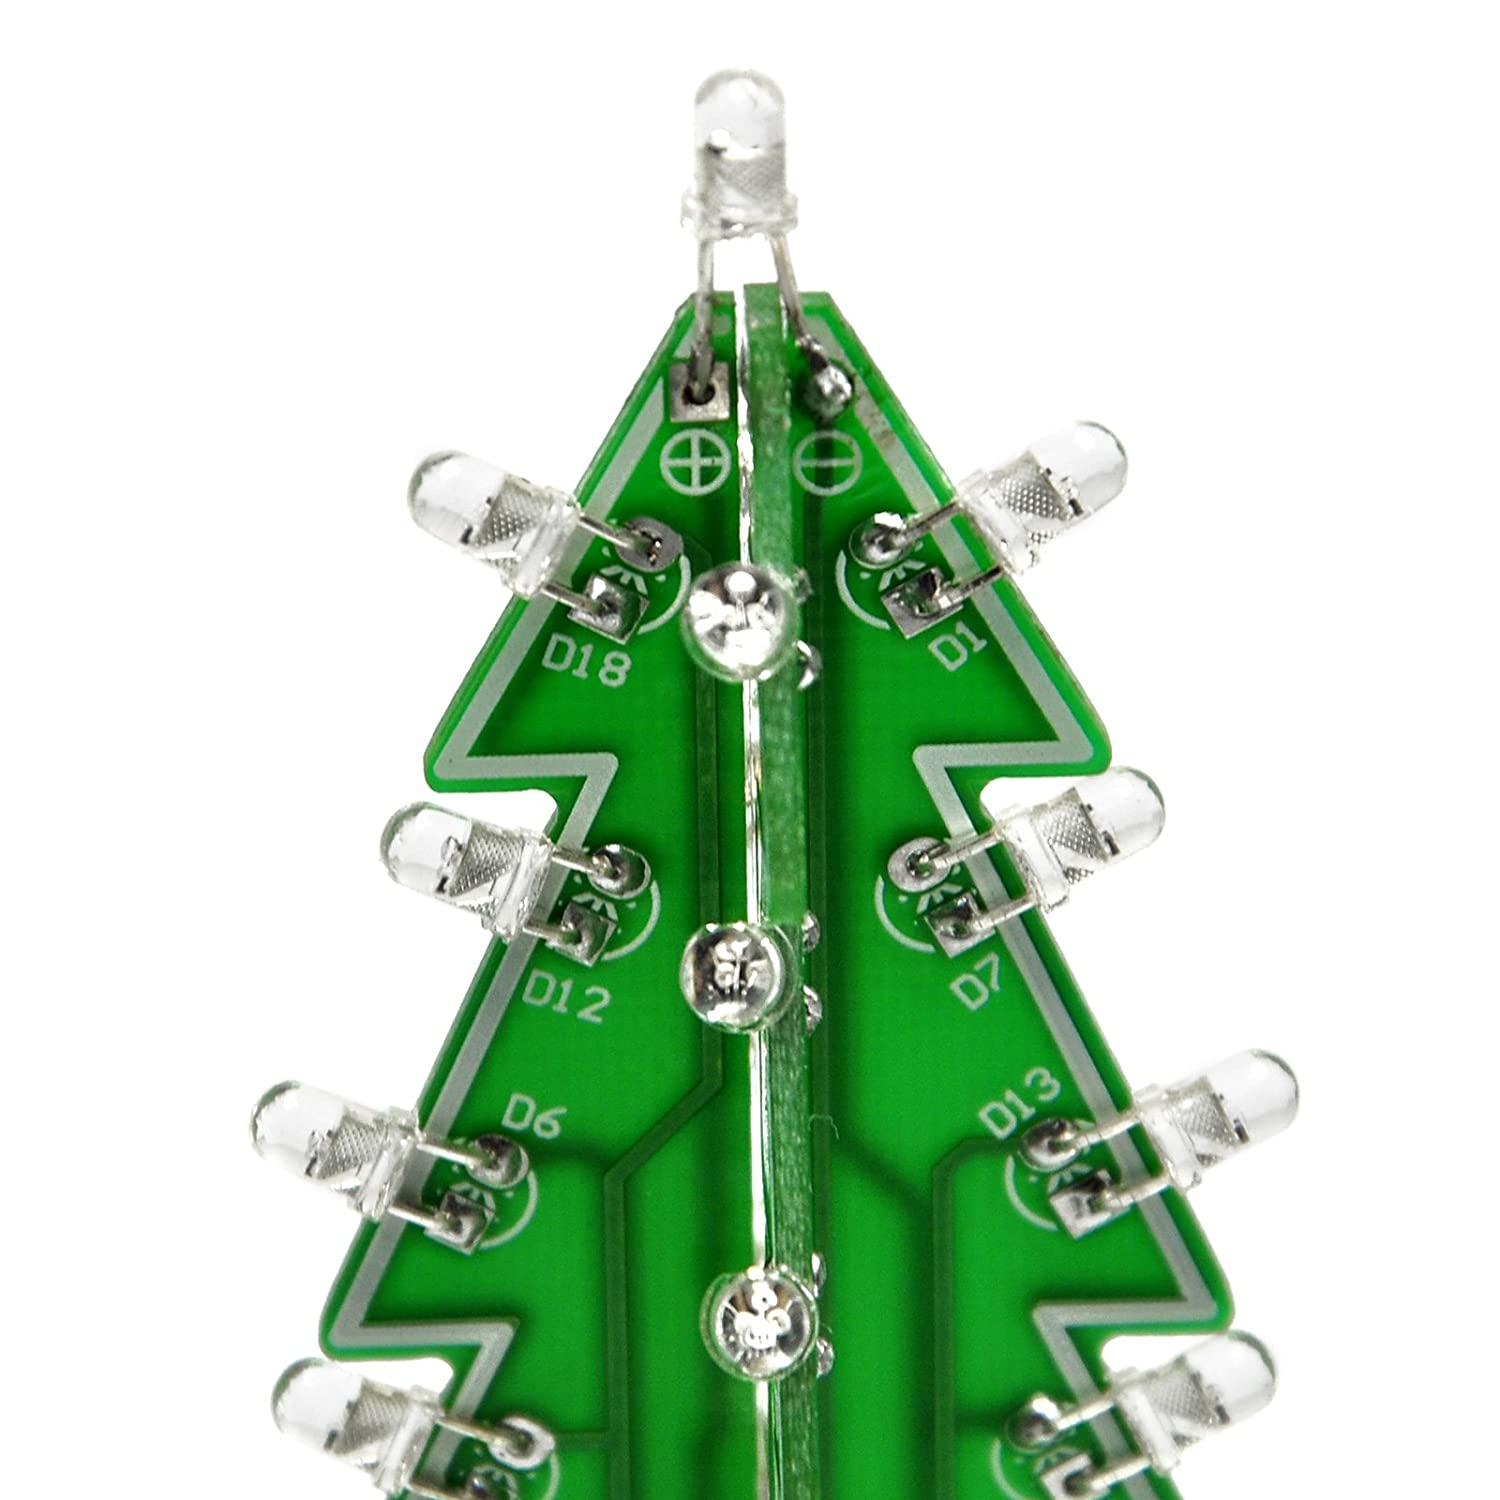 Gikfun 3d Xmas Tree Led Diy Kits 7 Color Flash Circuit Christmas Light Wiring Diagrams Test Ek1697 Computers Accessories